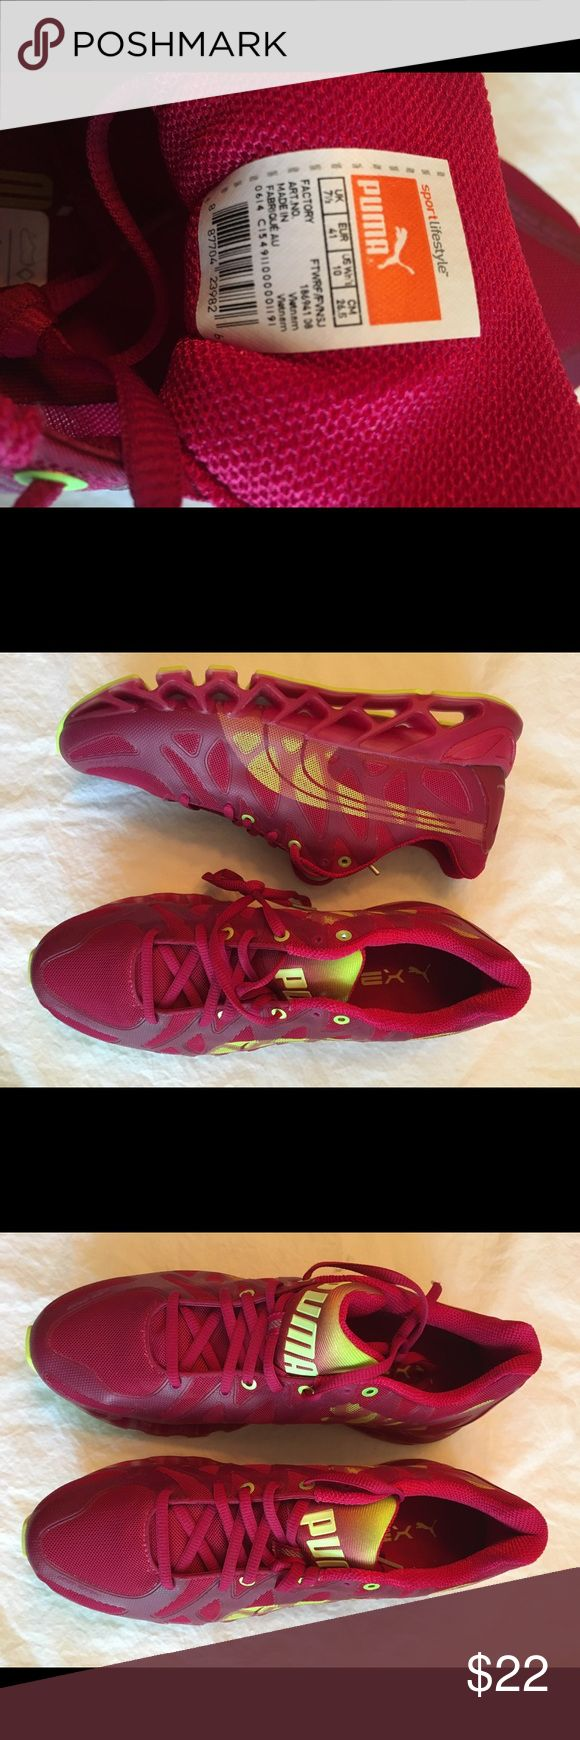 Women's Puma running shoes Brand new, ruby red running shoes Puma Shoes Athletic Shoes